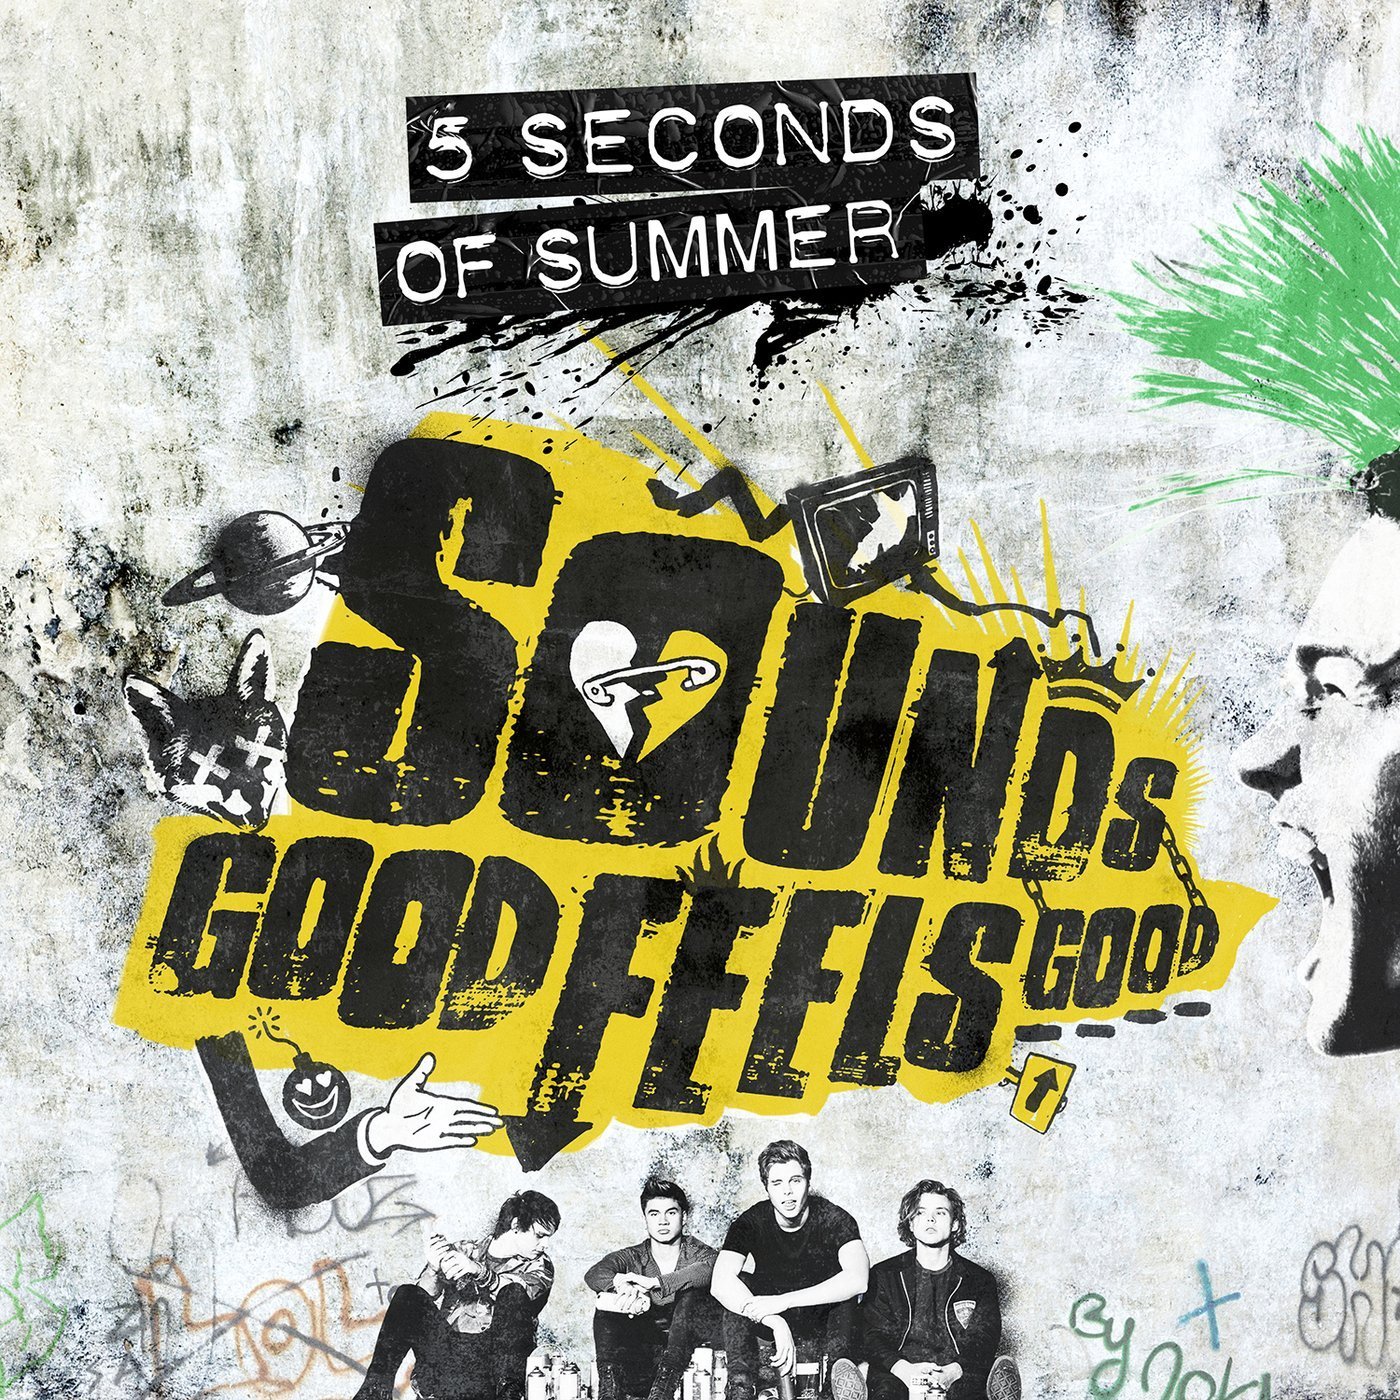 Sounds Good Feels Good: 5 Seconds Of Summer: Amazon.es: Música